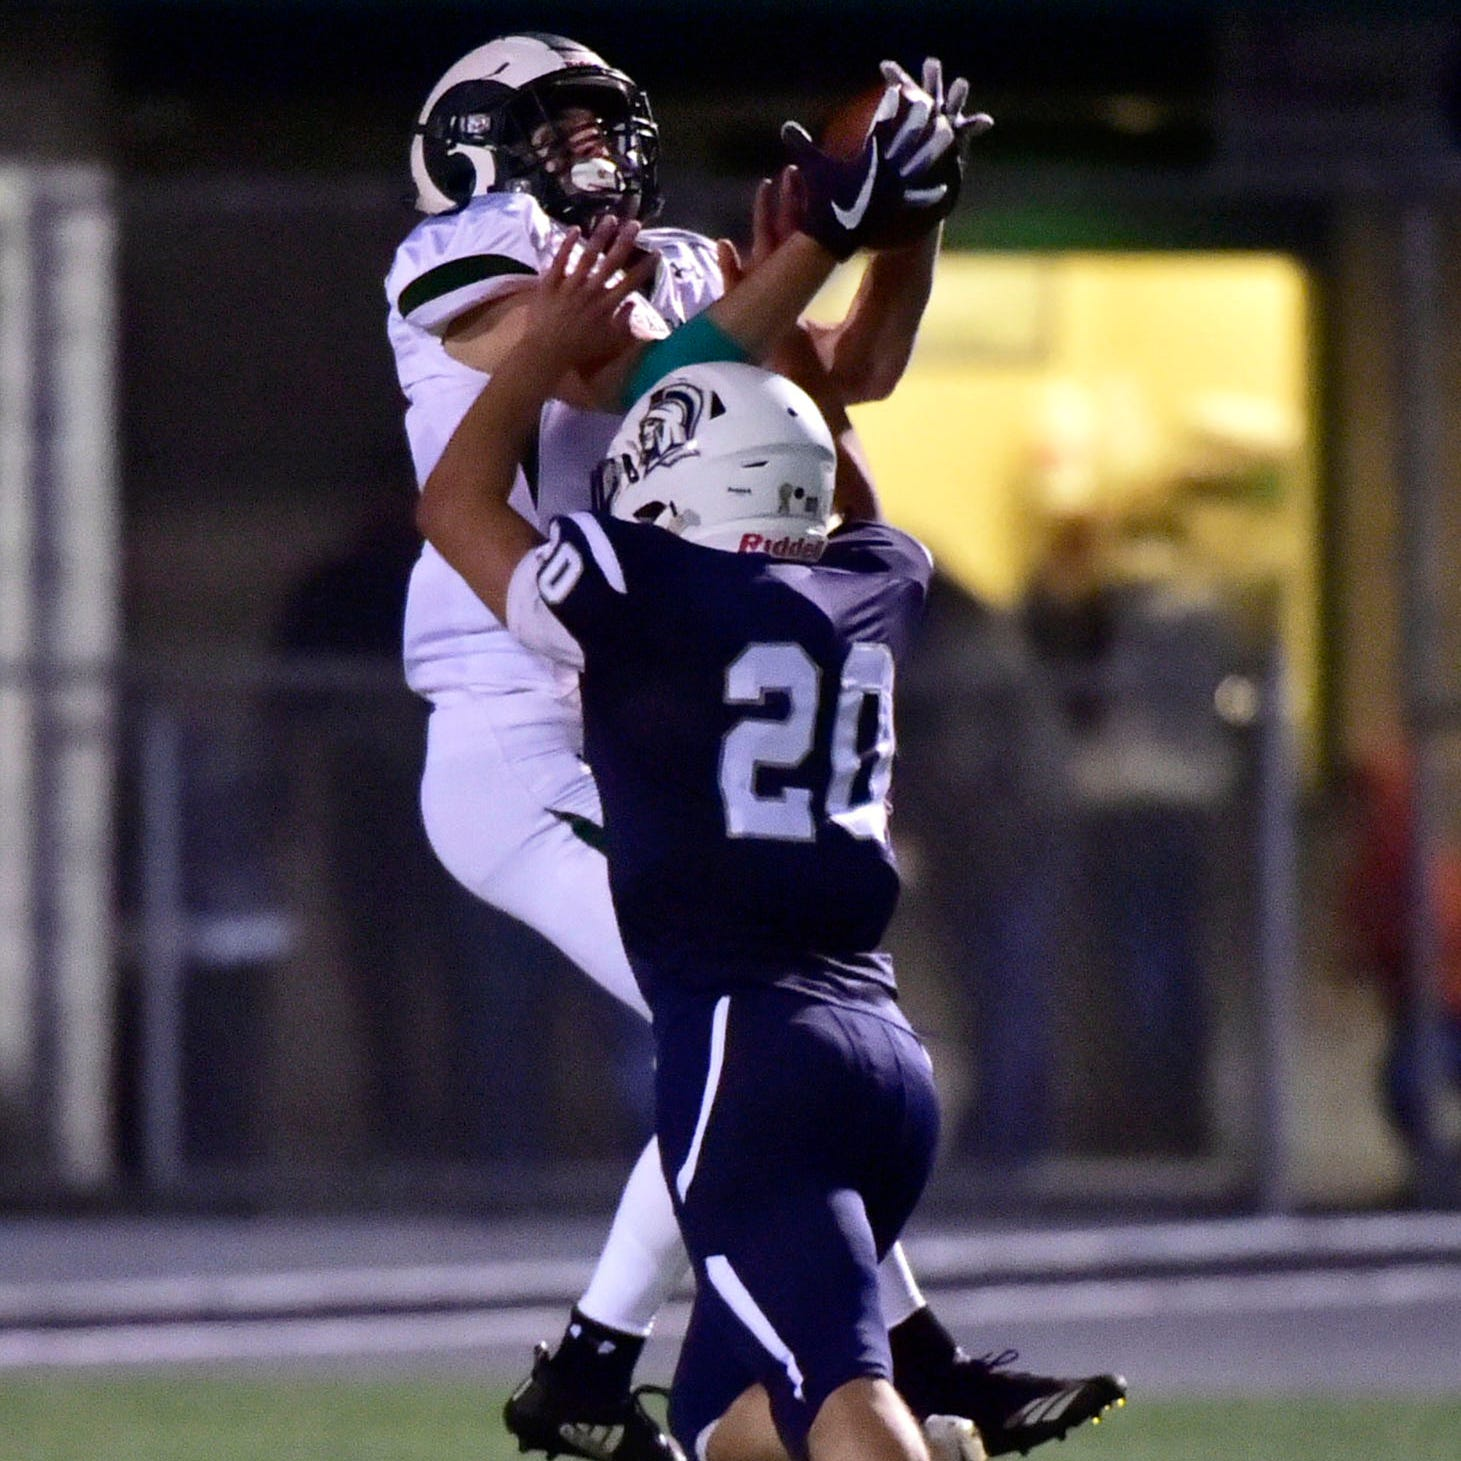 PHOTOS: Chambersburg was defeated by Central Dauphin 35-14 in District 3 football